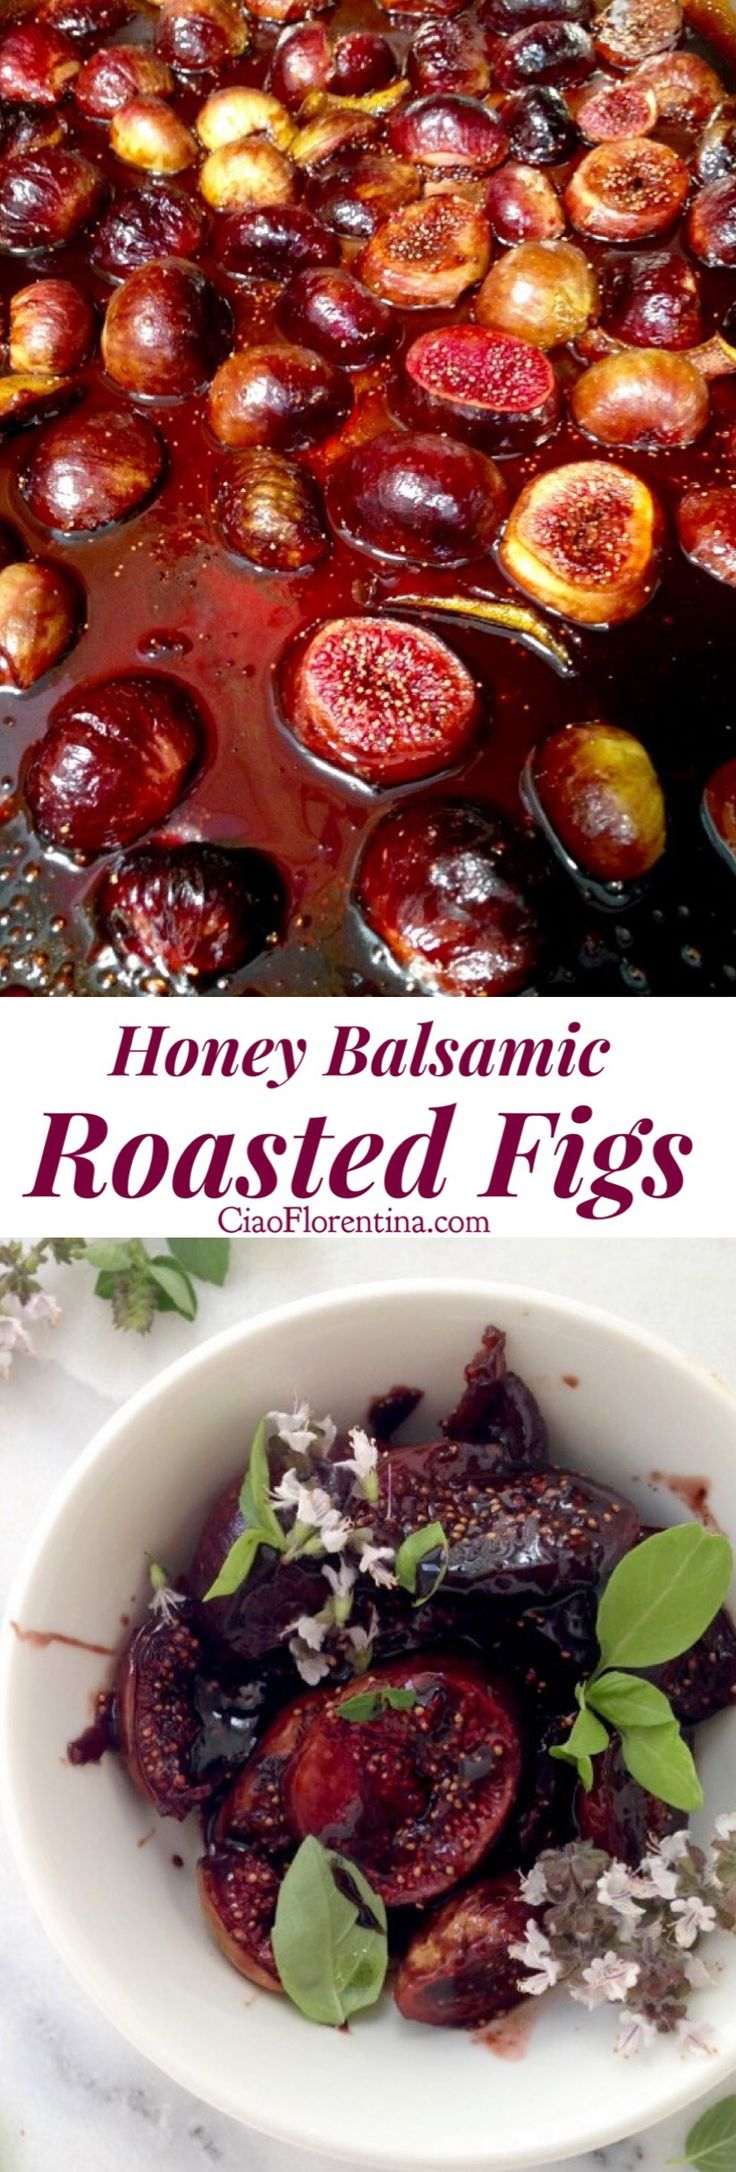 Honey Balsamic Roasted Figs Recipe with Vanilla and Lemon. Goes nice with goat cheese, Ricotta or as a pizza topping | CiaoFlorentina.com @CiaoFlorentina